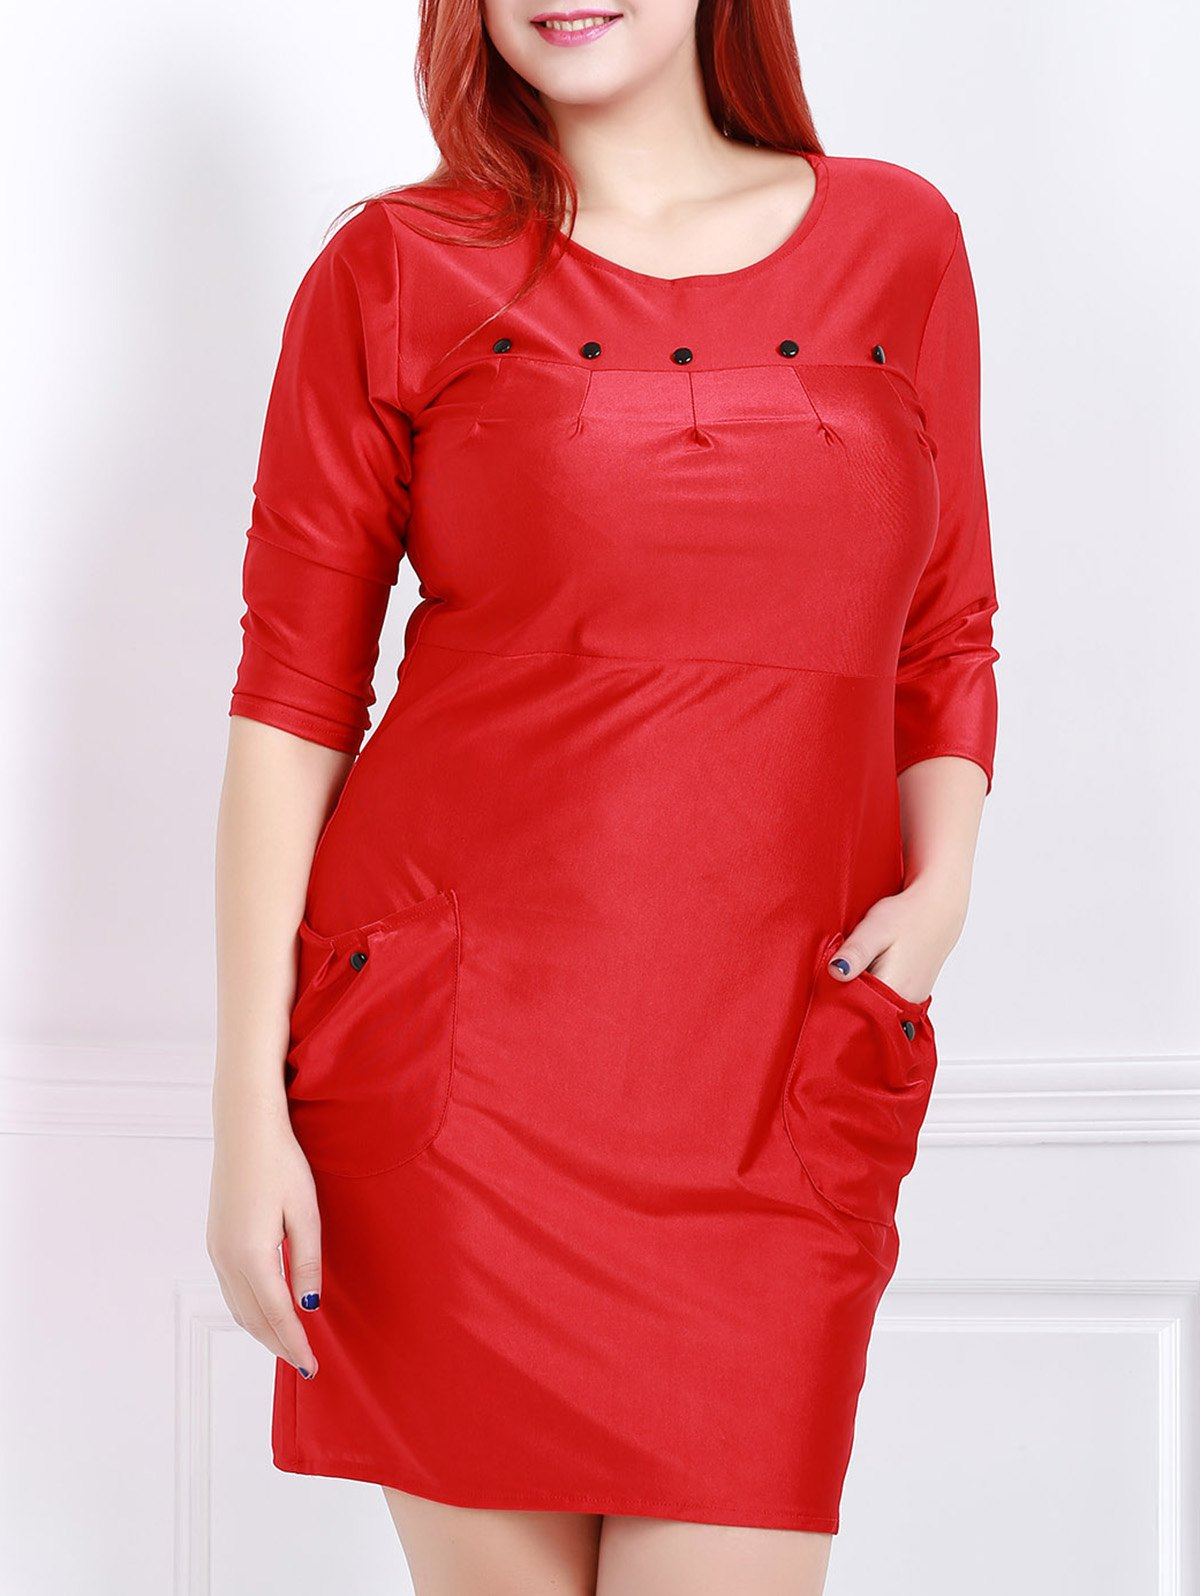 Charming Solid Color Button Design 3/4 Sleeve Plus Size Dress For Women - RED 3XL